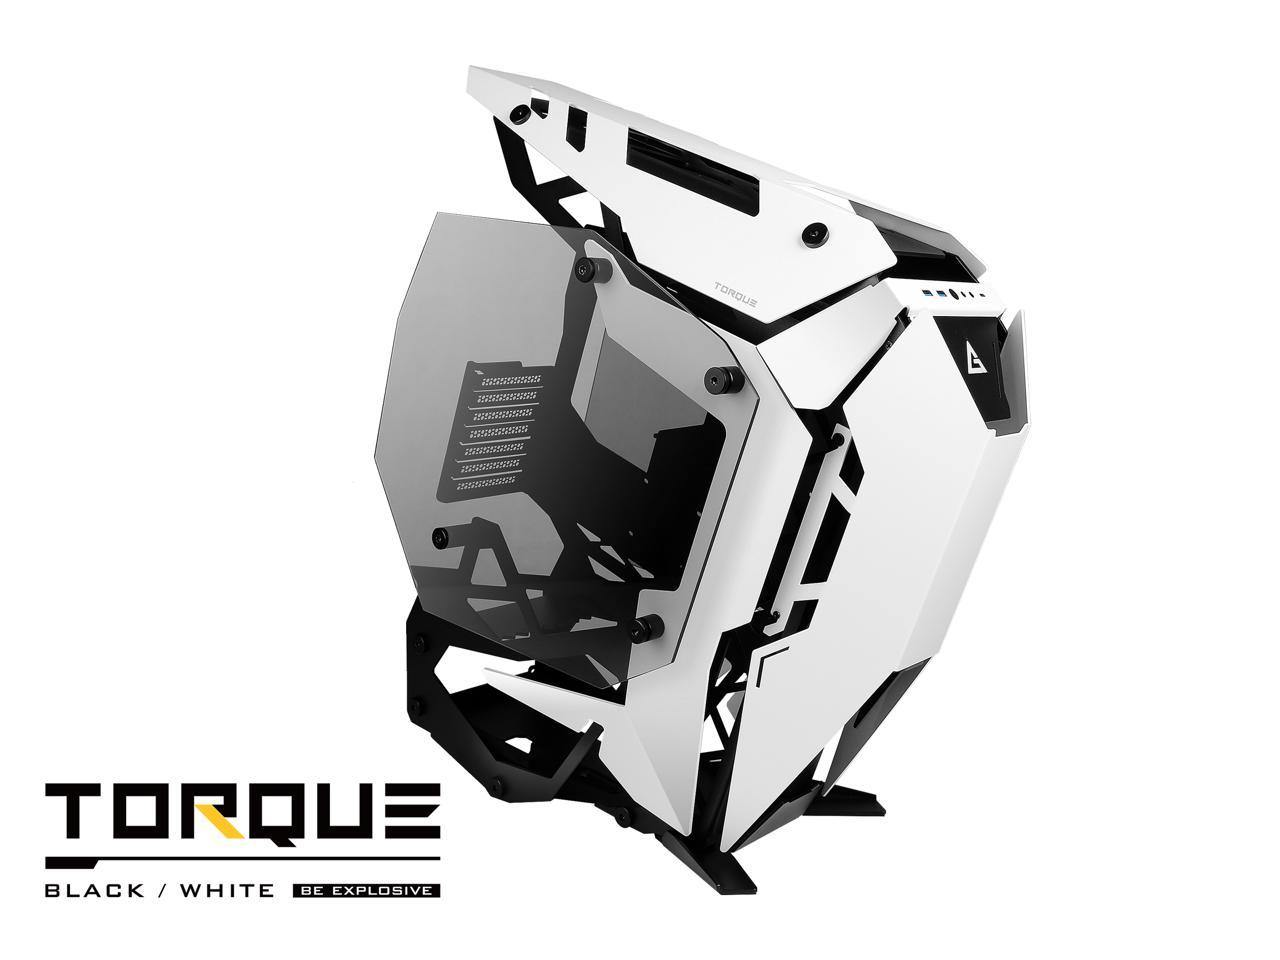 Antec TORQUE White / Black Aluminum ATX Mid Tower Computer Case/ Winner of iF Design Award 2019